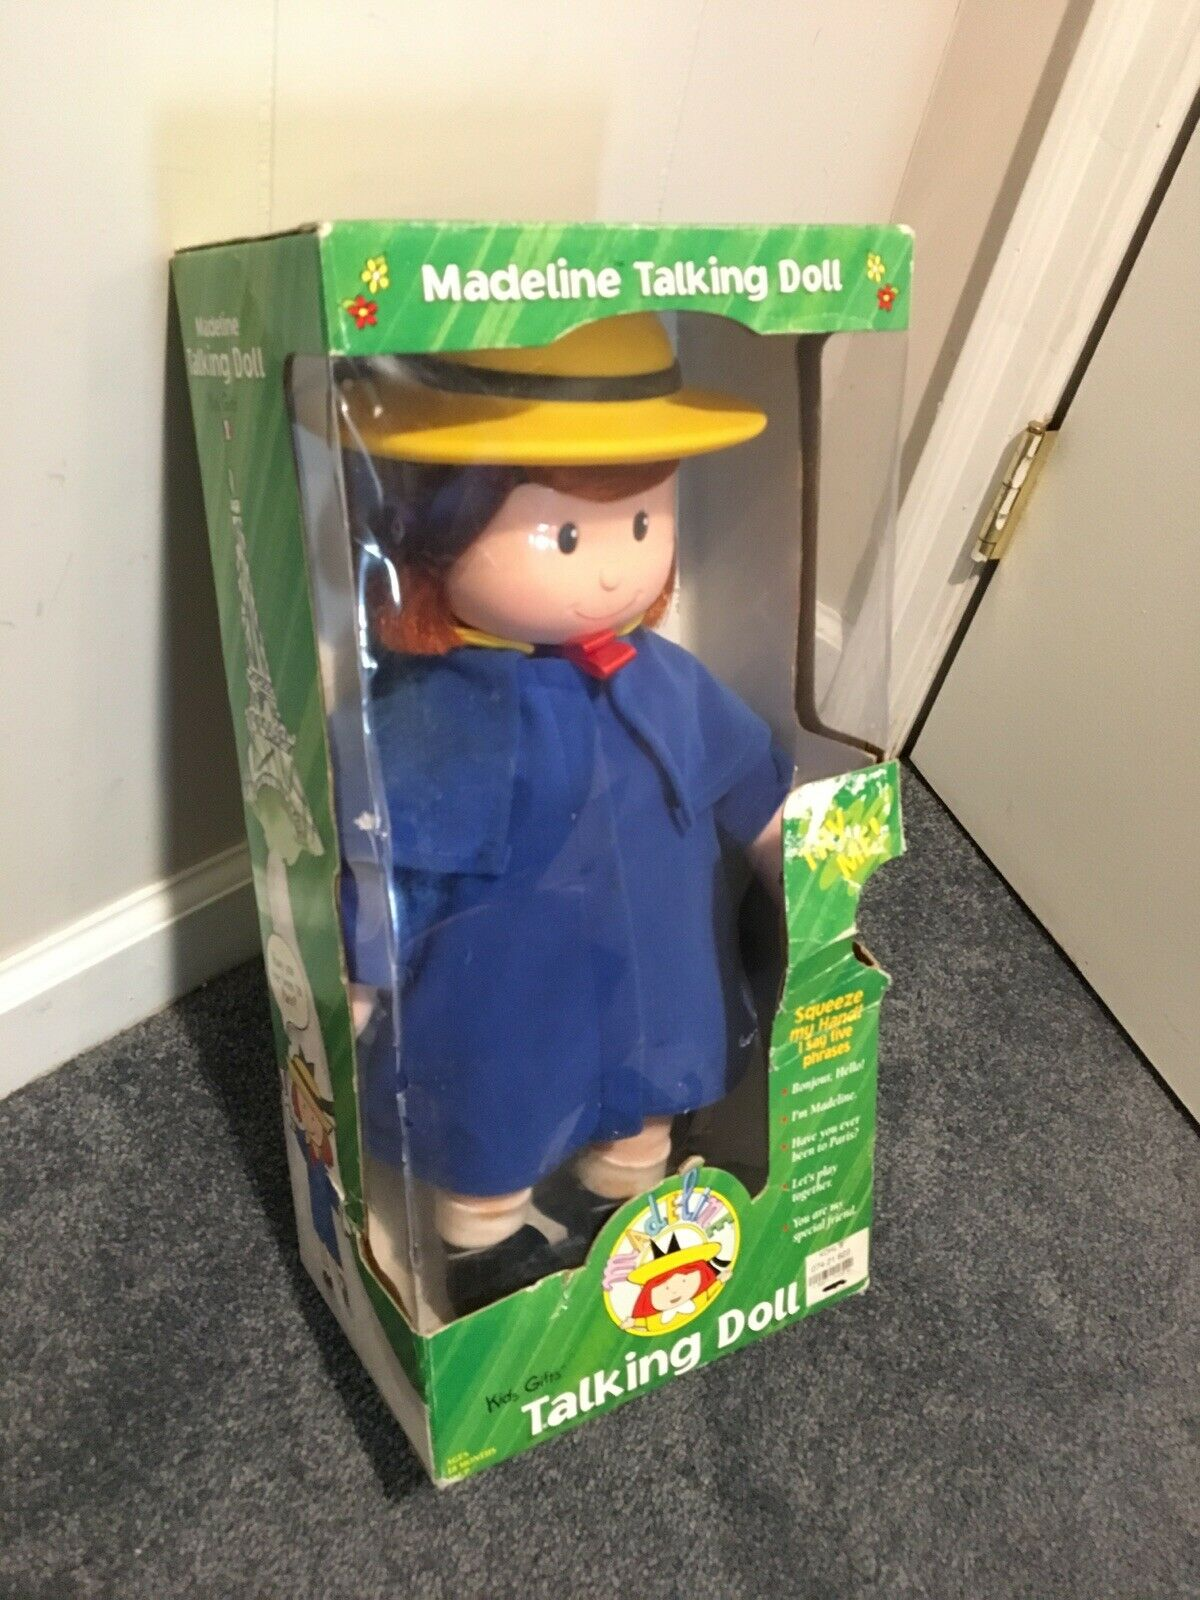 Vintage MadelineTalking Doll 16  1998 Unopened Grün Box Kids Gifts Working